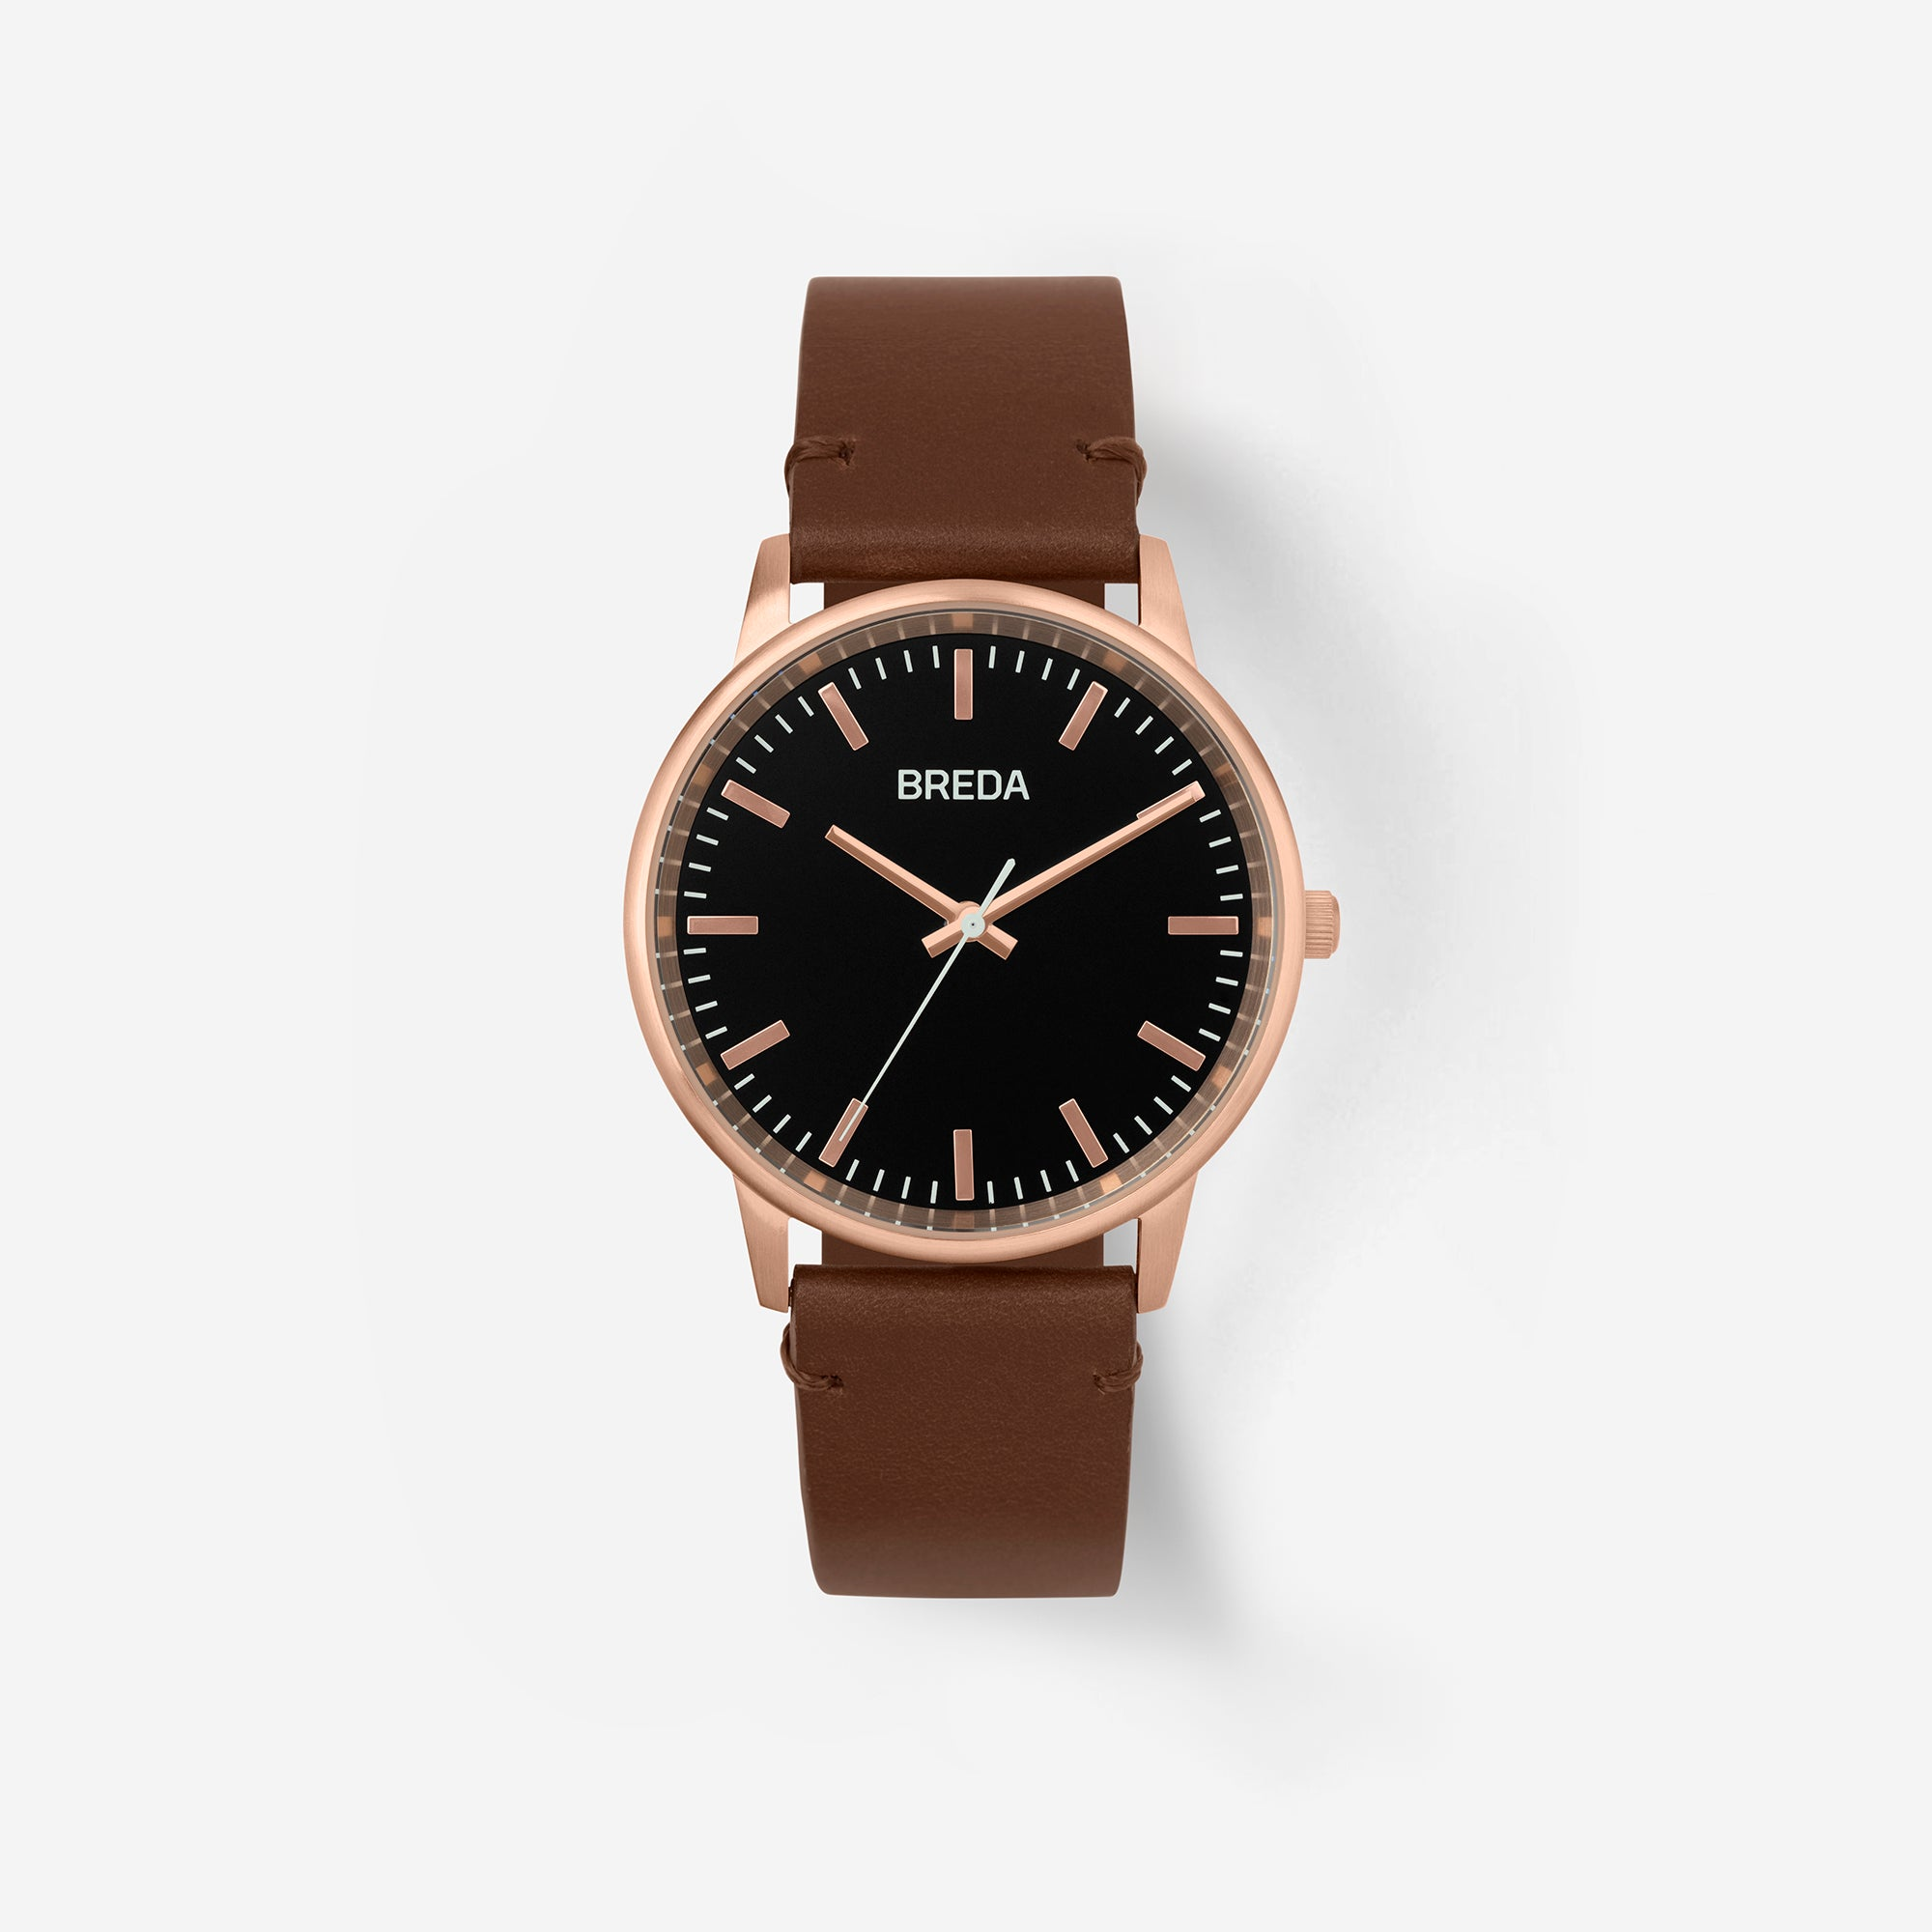 //cdn.shopify.com/s/files/1/0879/6650/products/breda-zapf-1697n-rose-gold-brown-leather-watch-front_1024x1024.jpg?v=1522793793